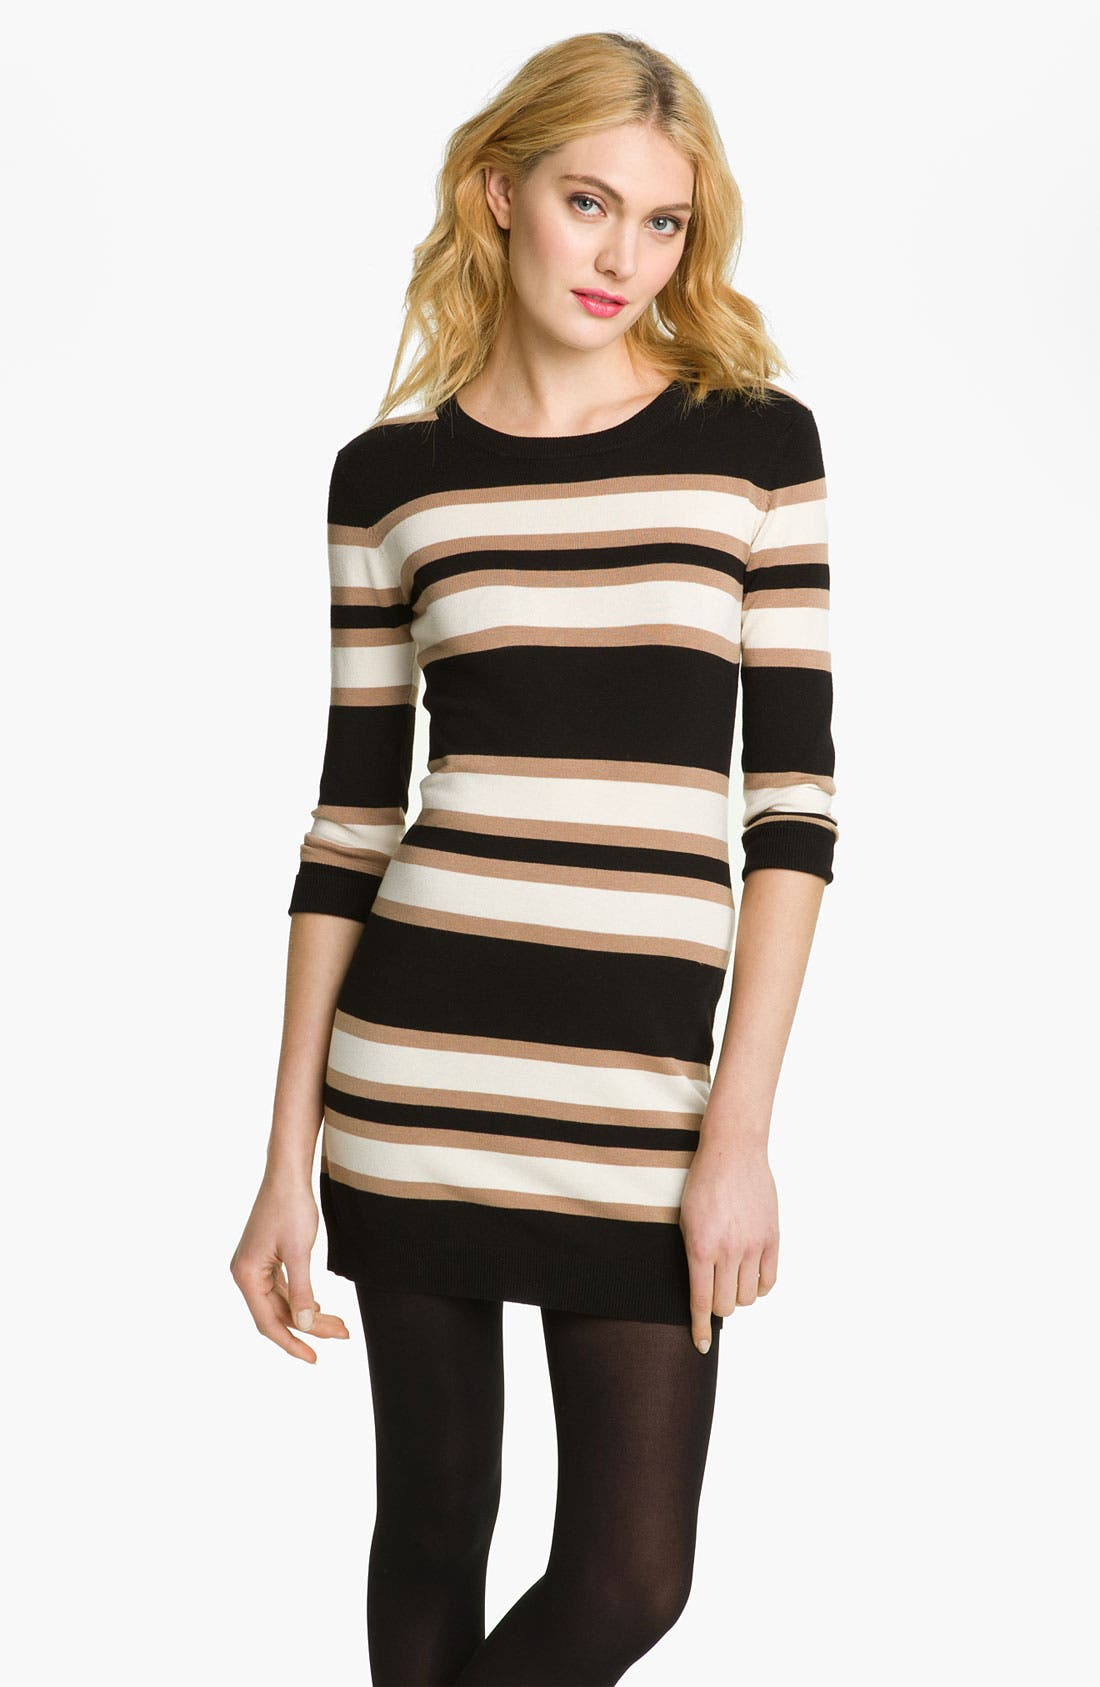 Main Image - French Connection 'Bambi Knits' Multi Stripe Sweater Dress